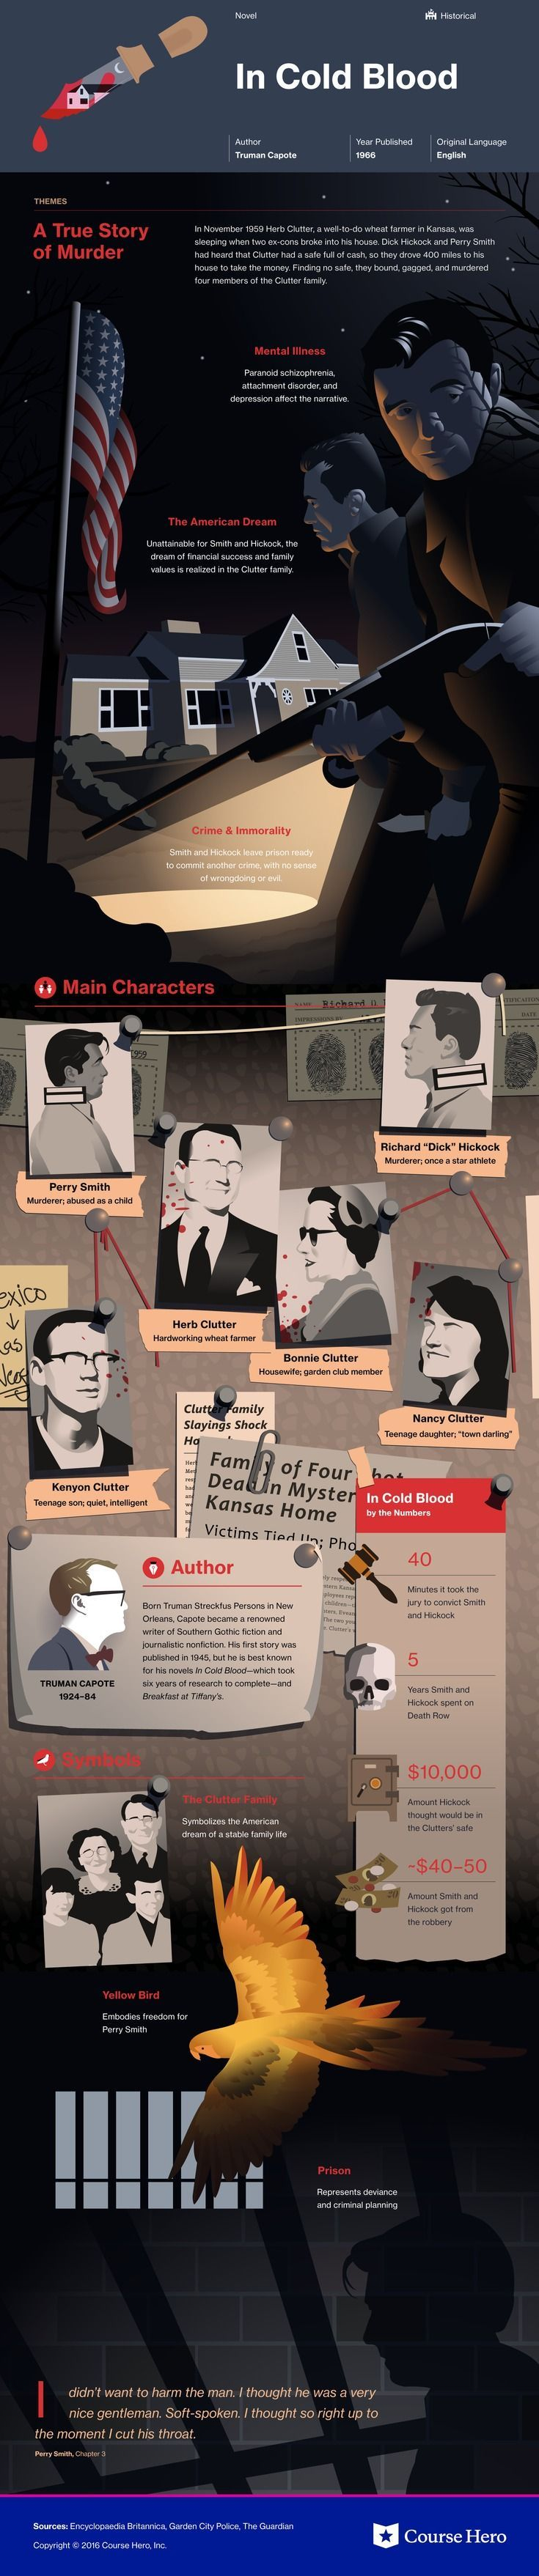 ideas about in cold blood book truman capote this coursehero infographic on in cold blood is both visually stunning and informative